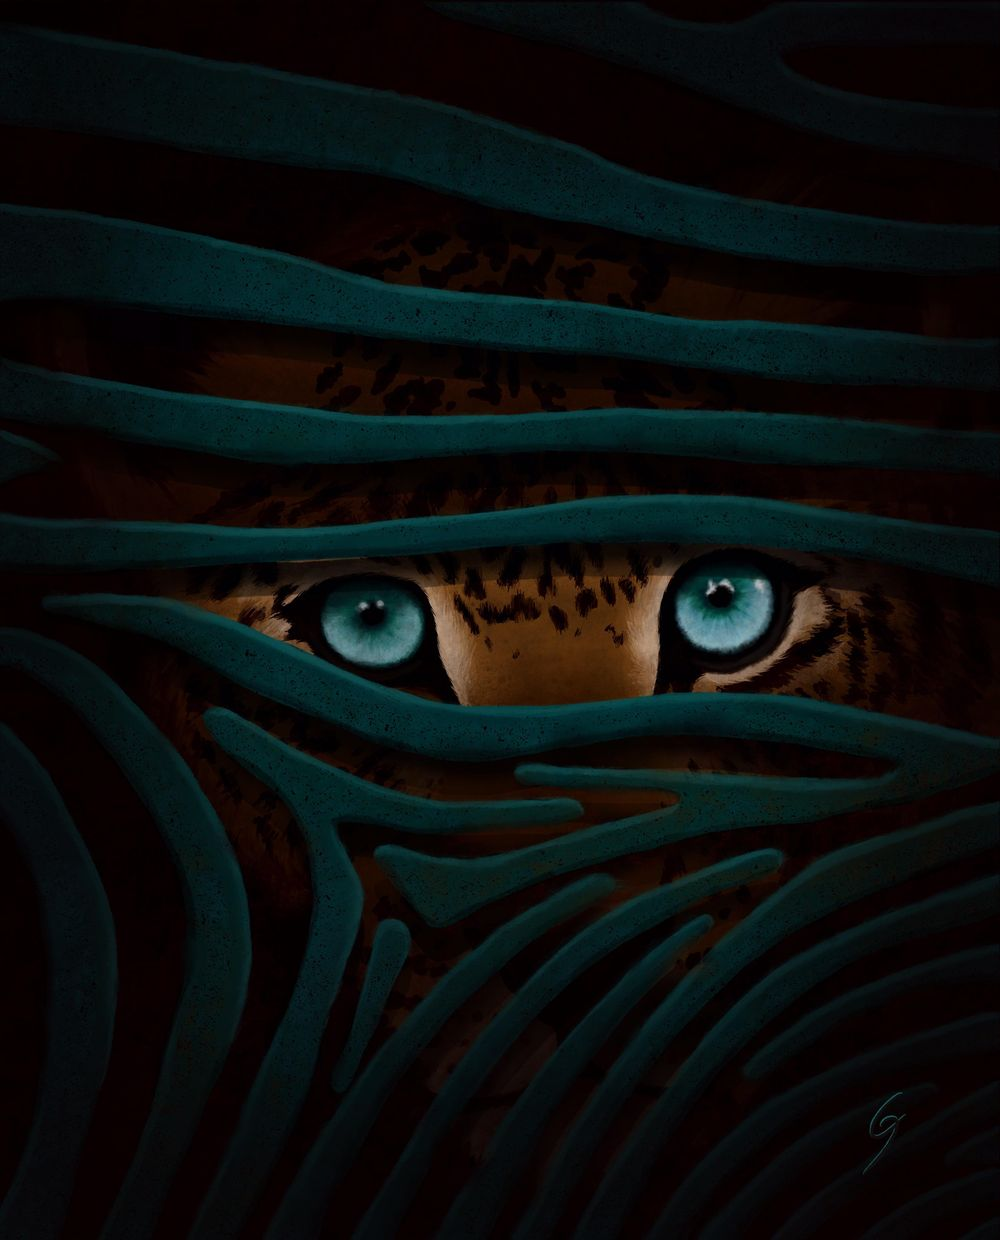 Jungle Eyes - image 1 - student project